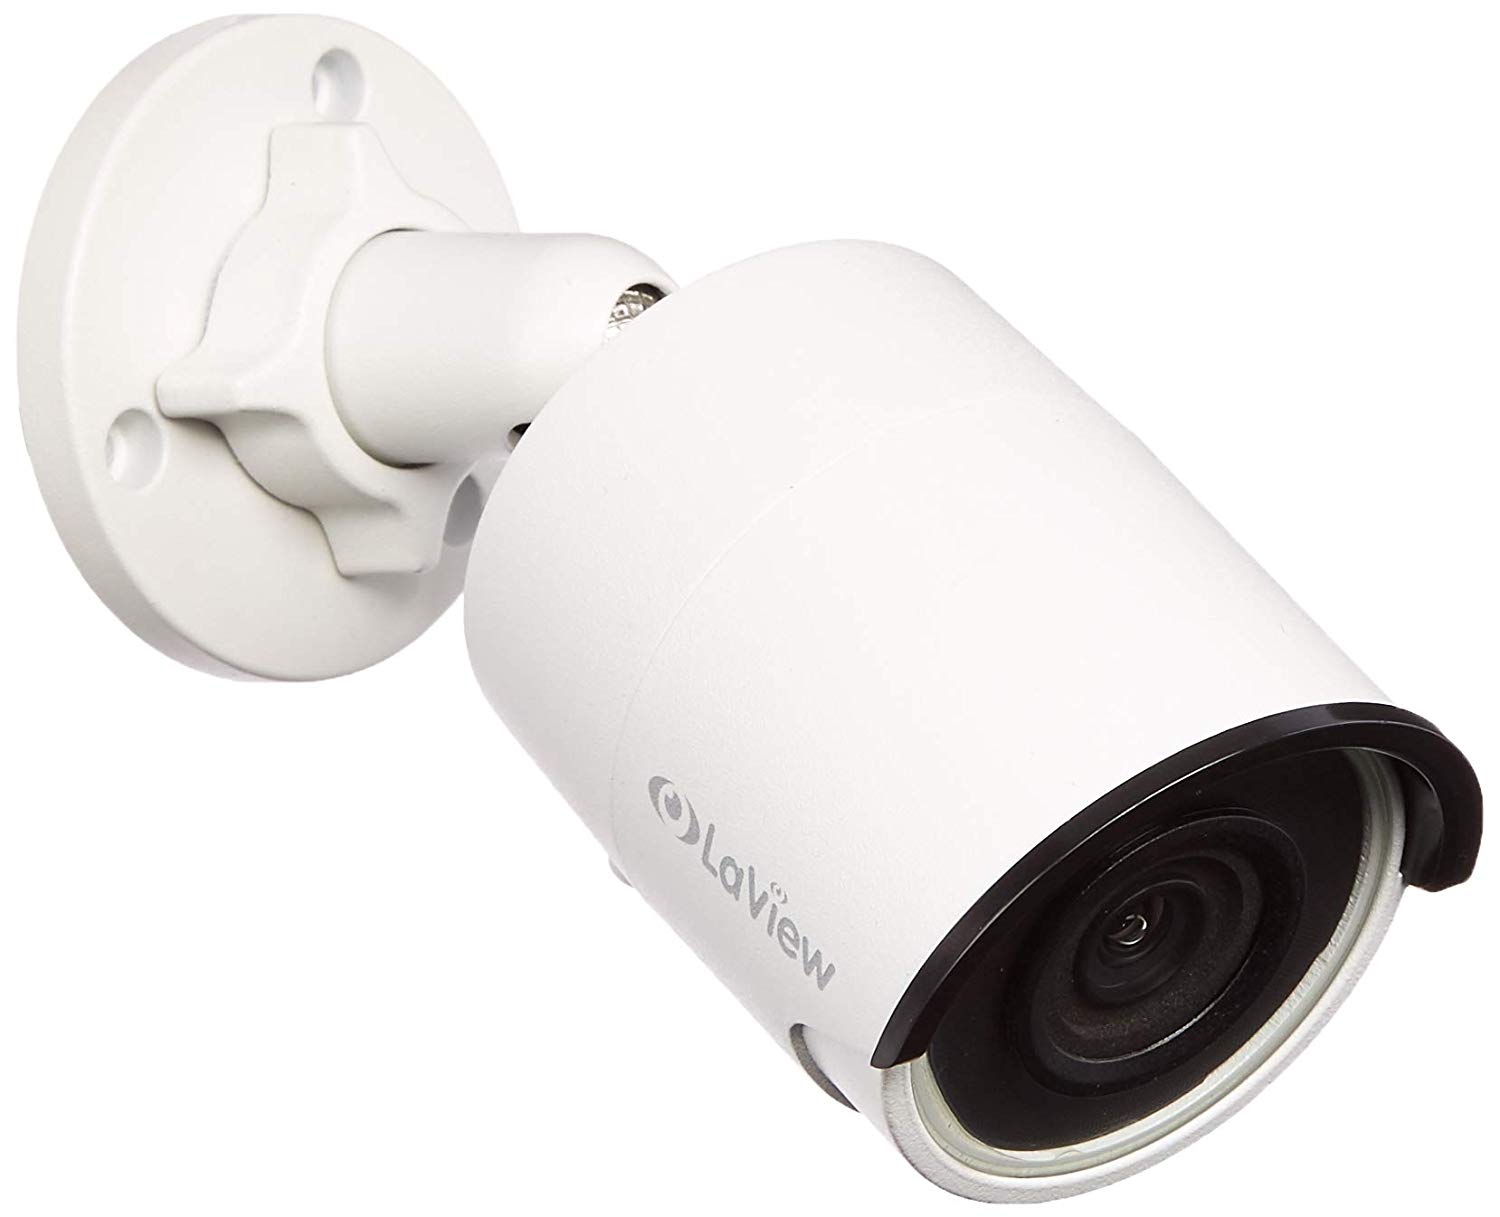 buy best laview 4k security camera system